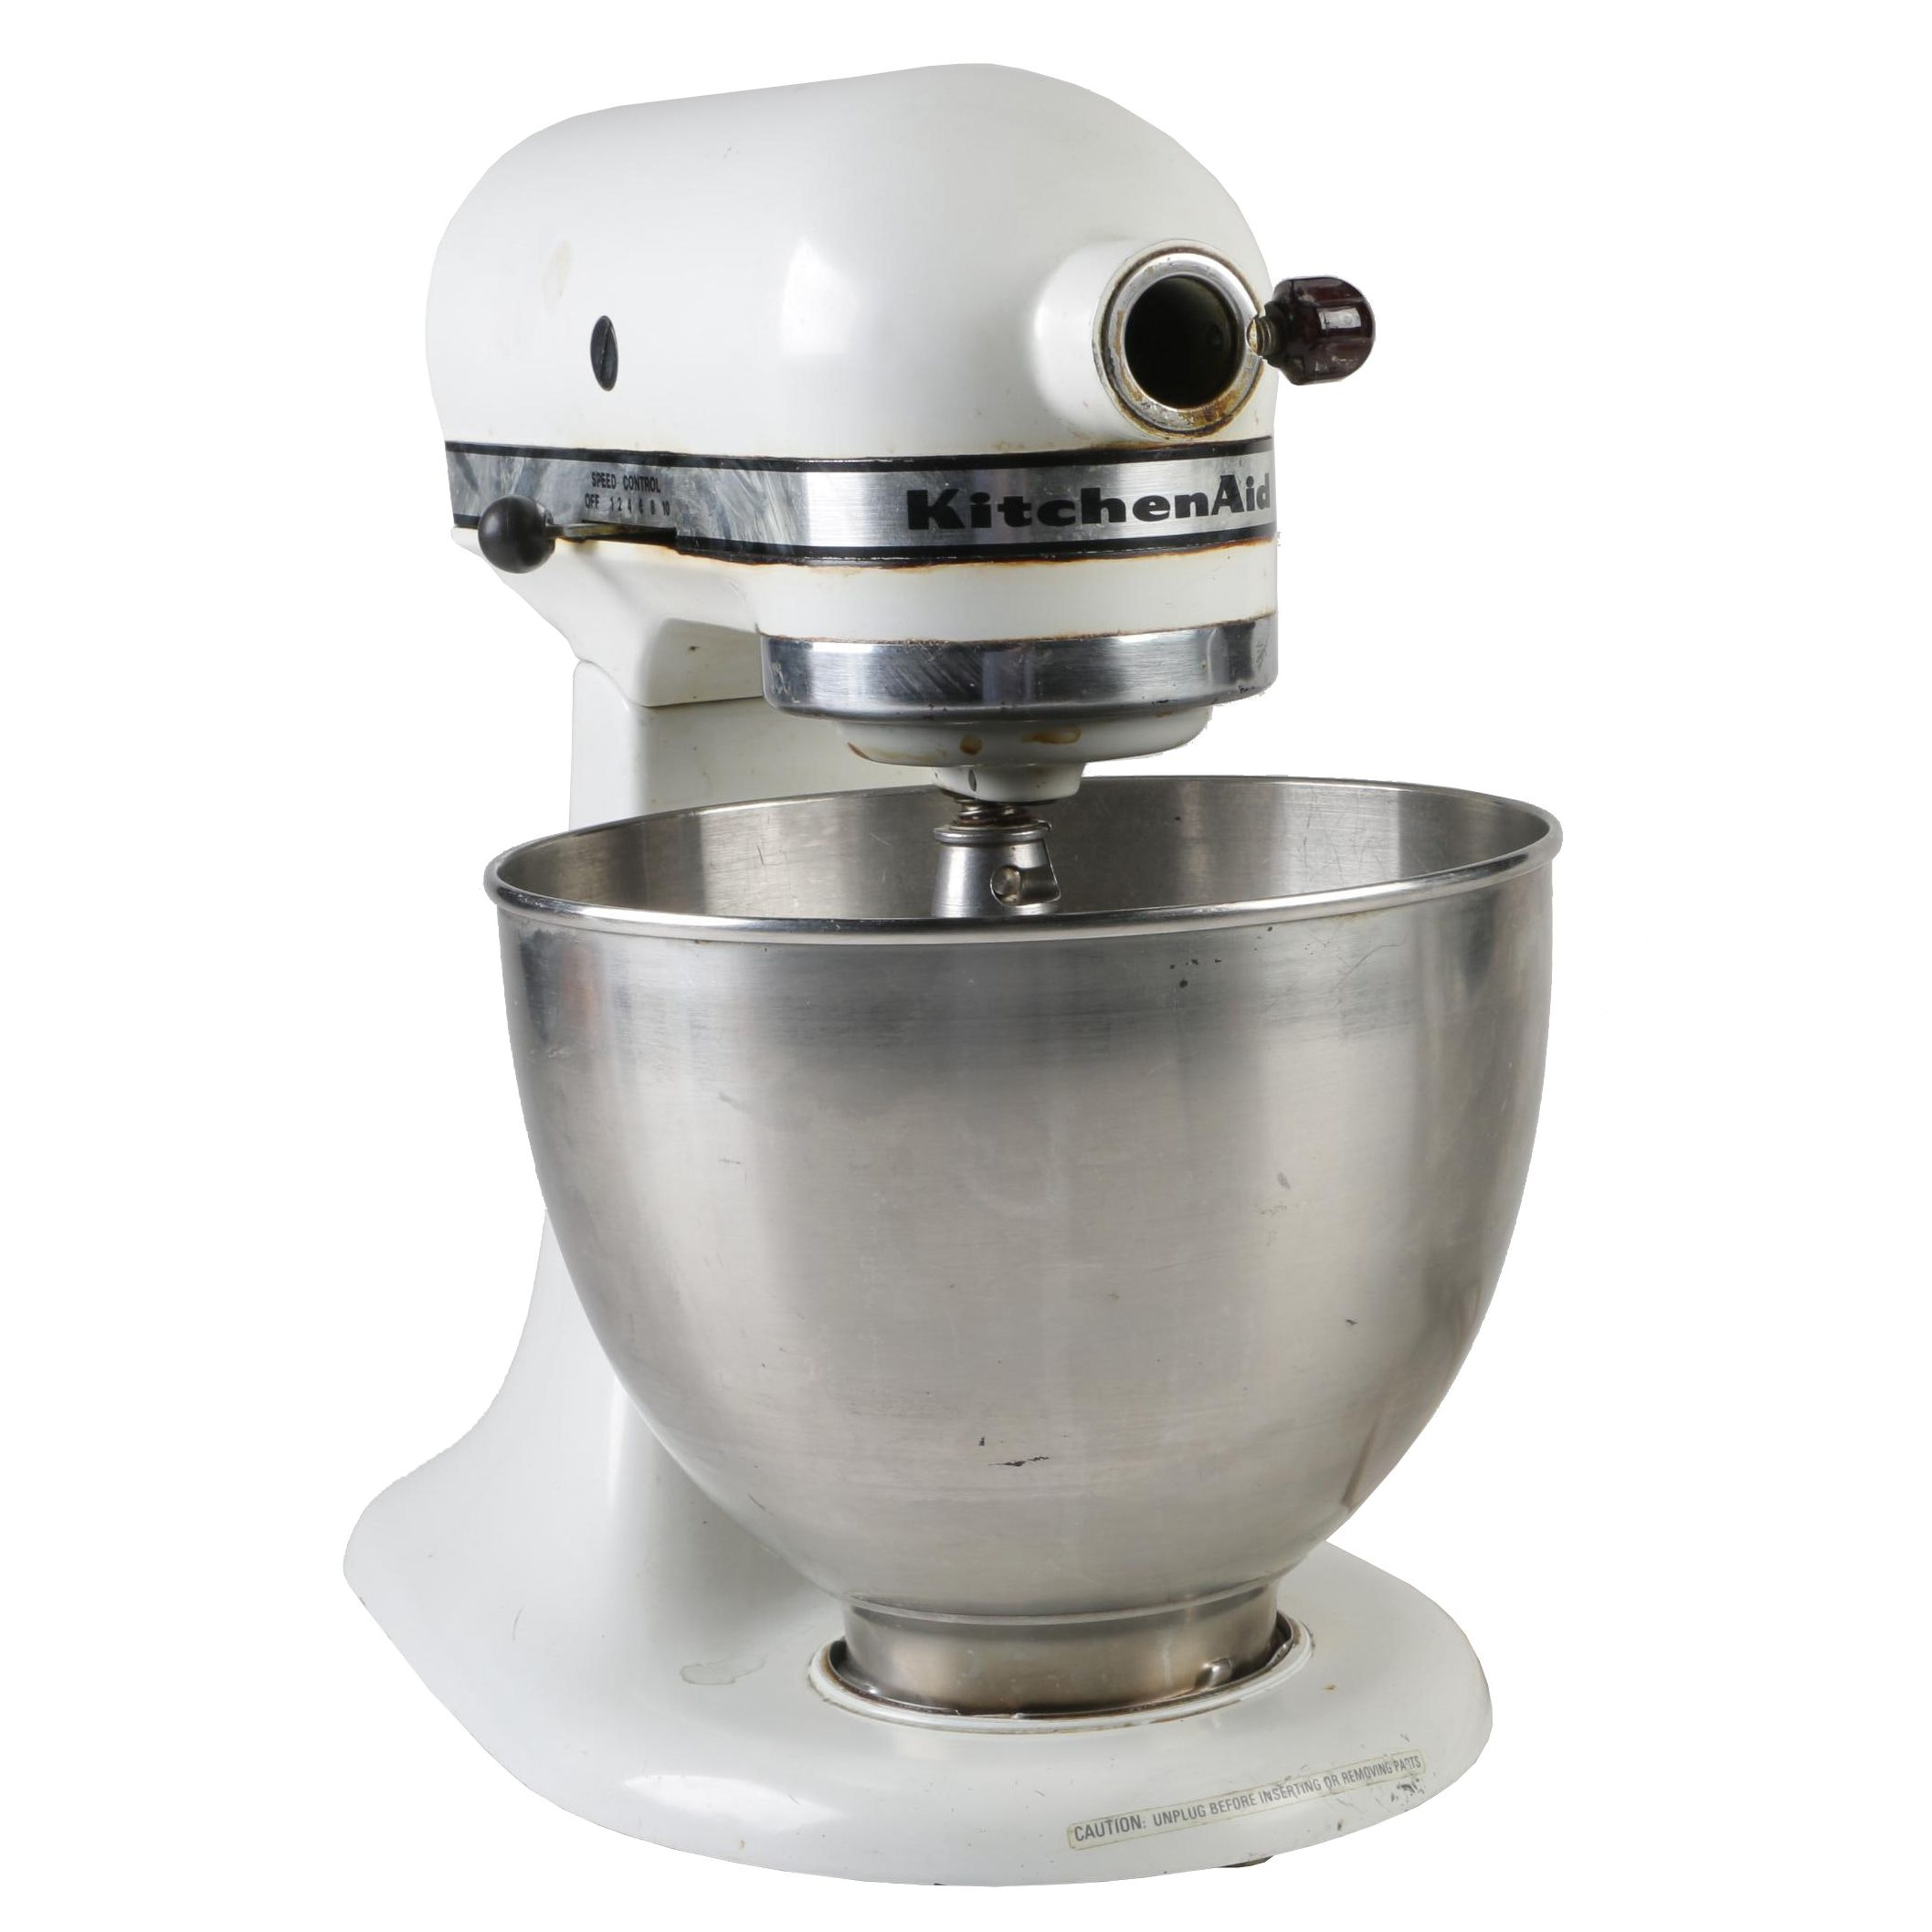 KitchenAid Classic K45 Stand Mixer